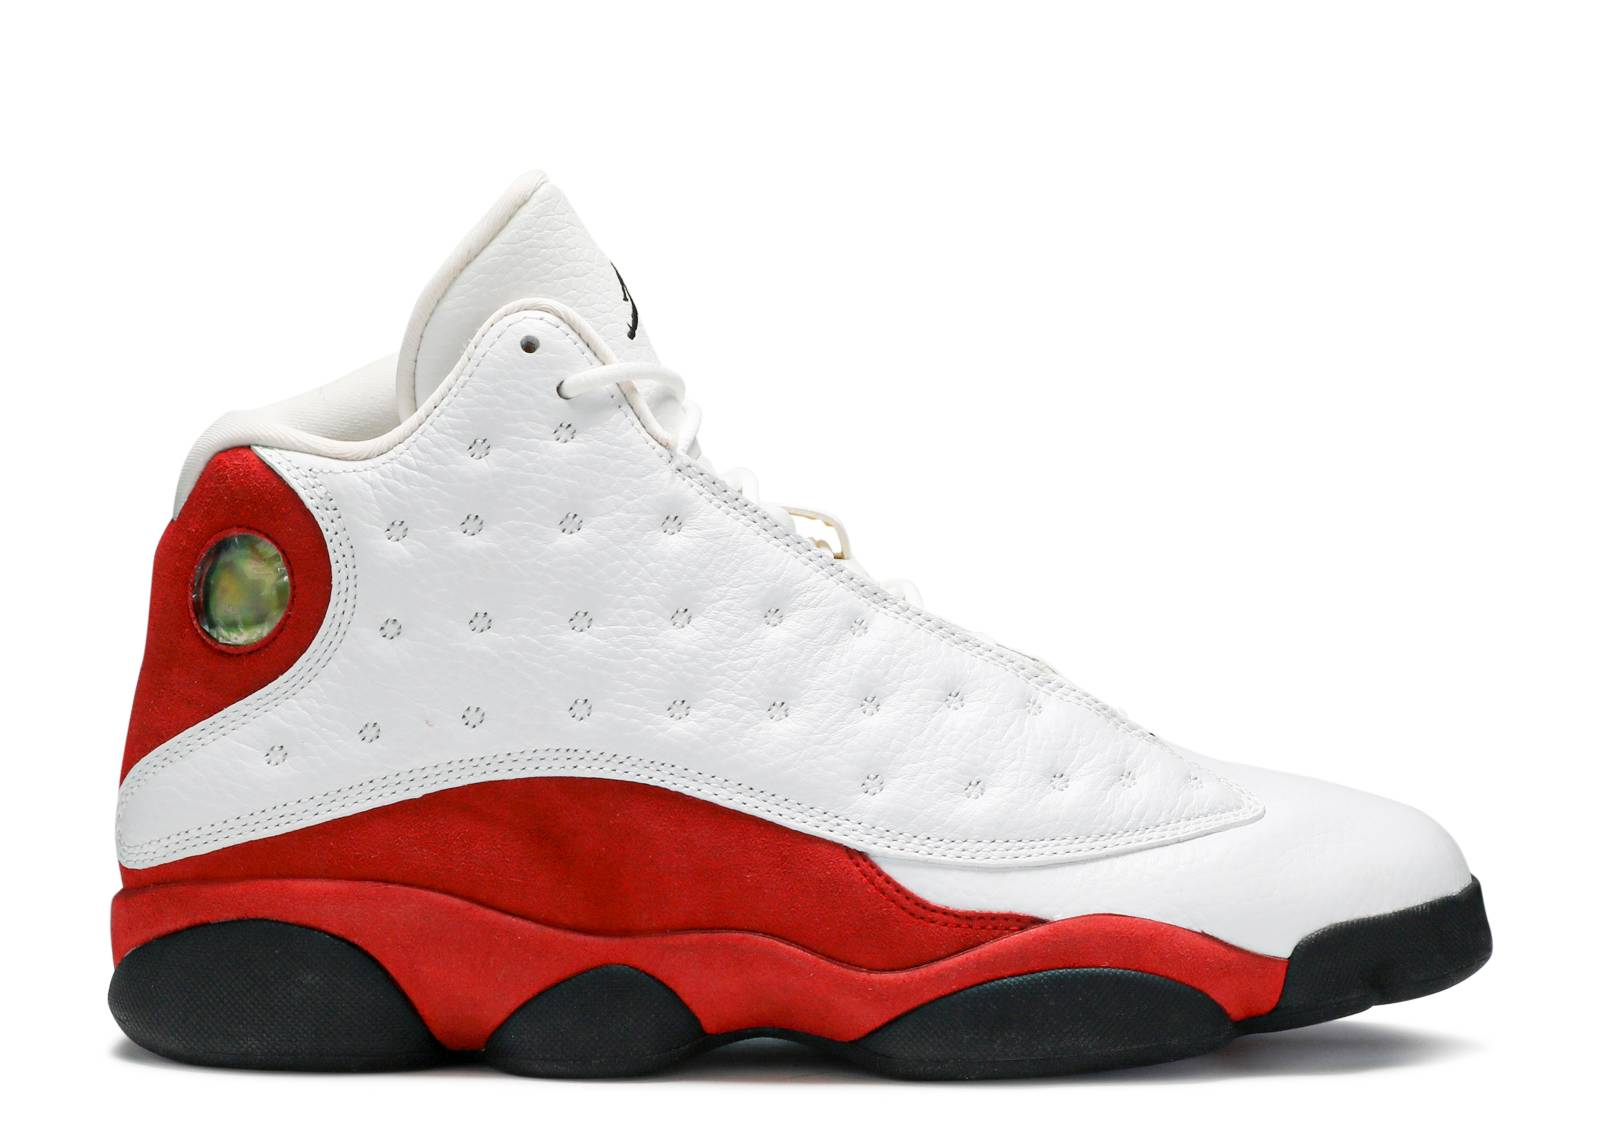 new arrival e1e89 7c4b6 air jordan 13 retro